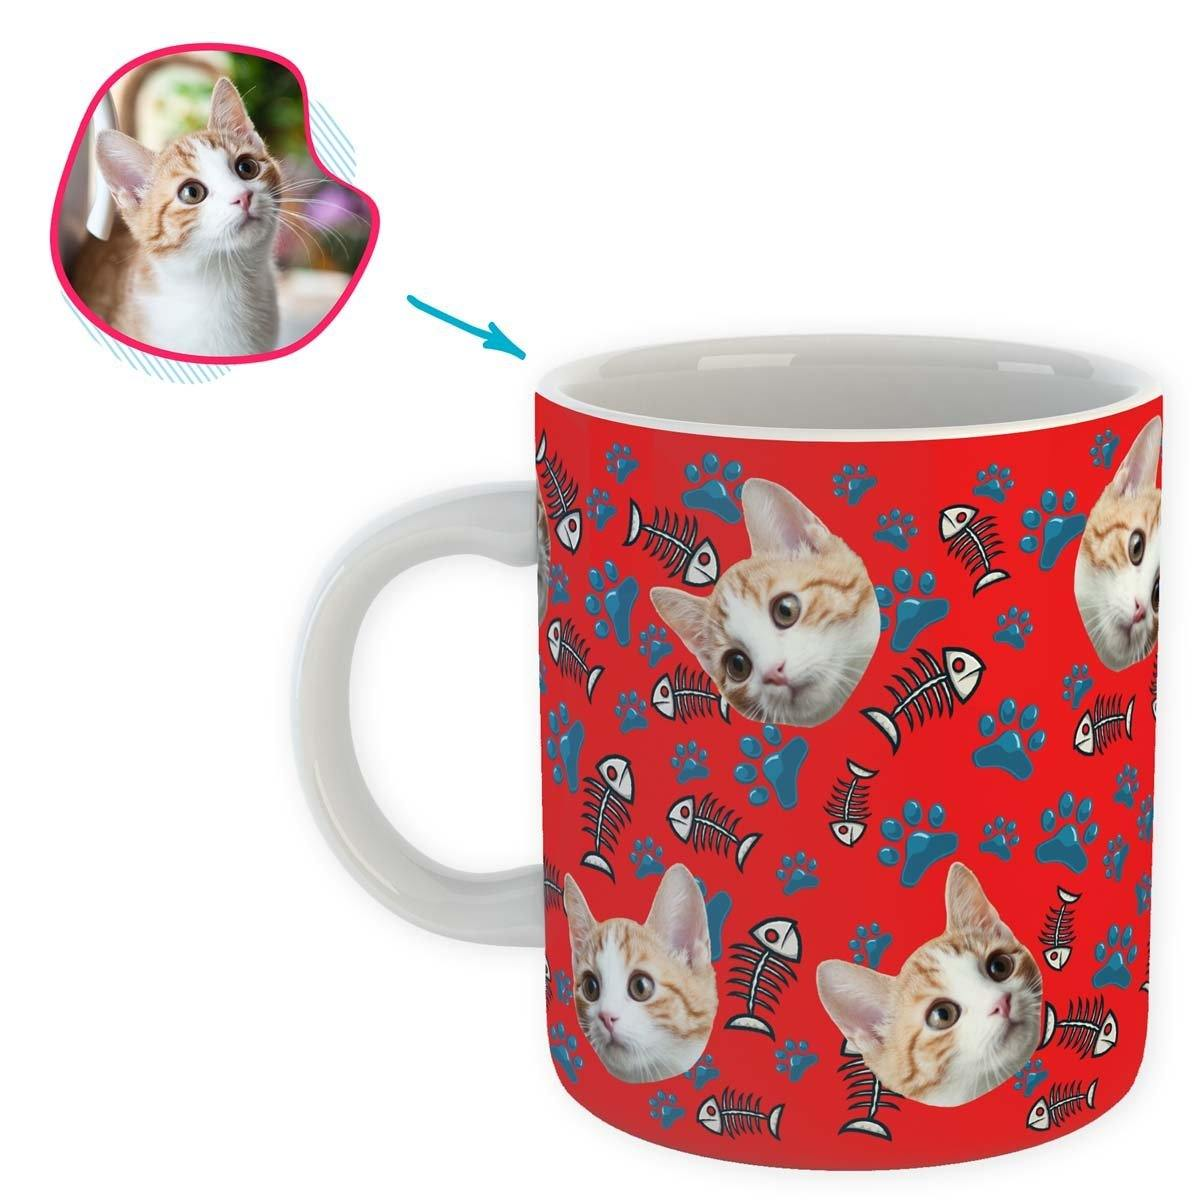 red Cat mug personalized with photo of face printed on it